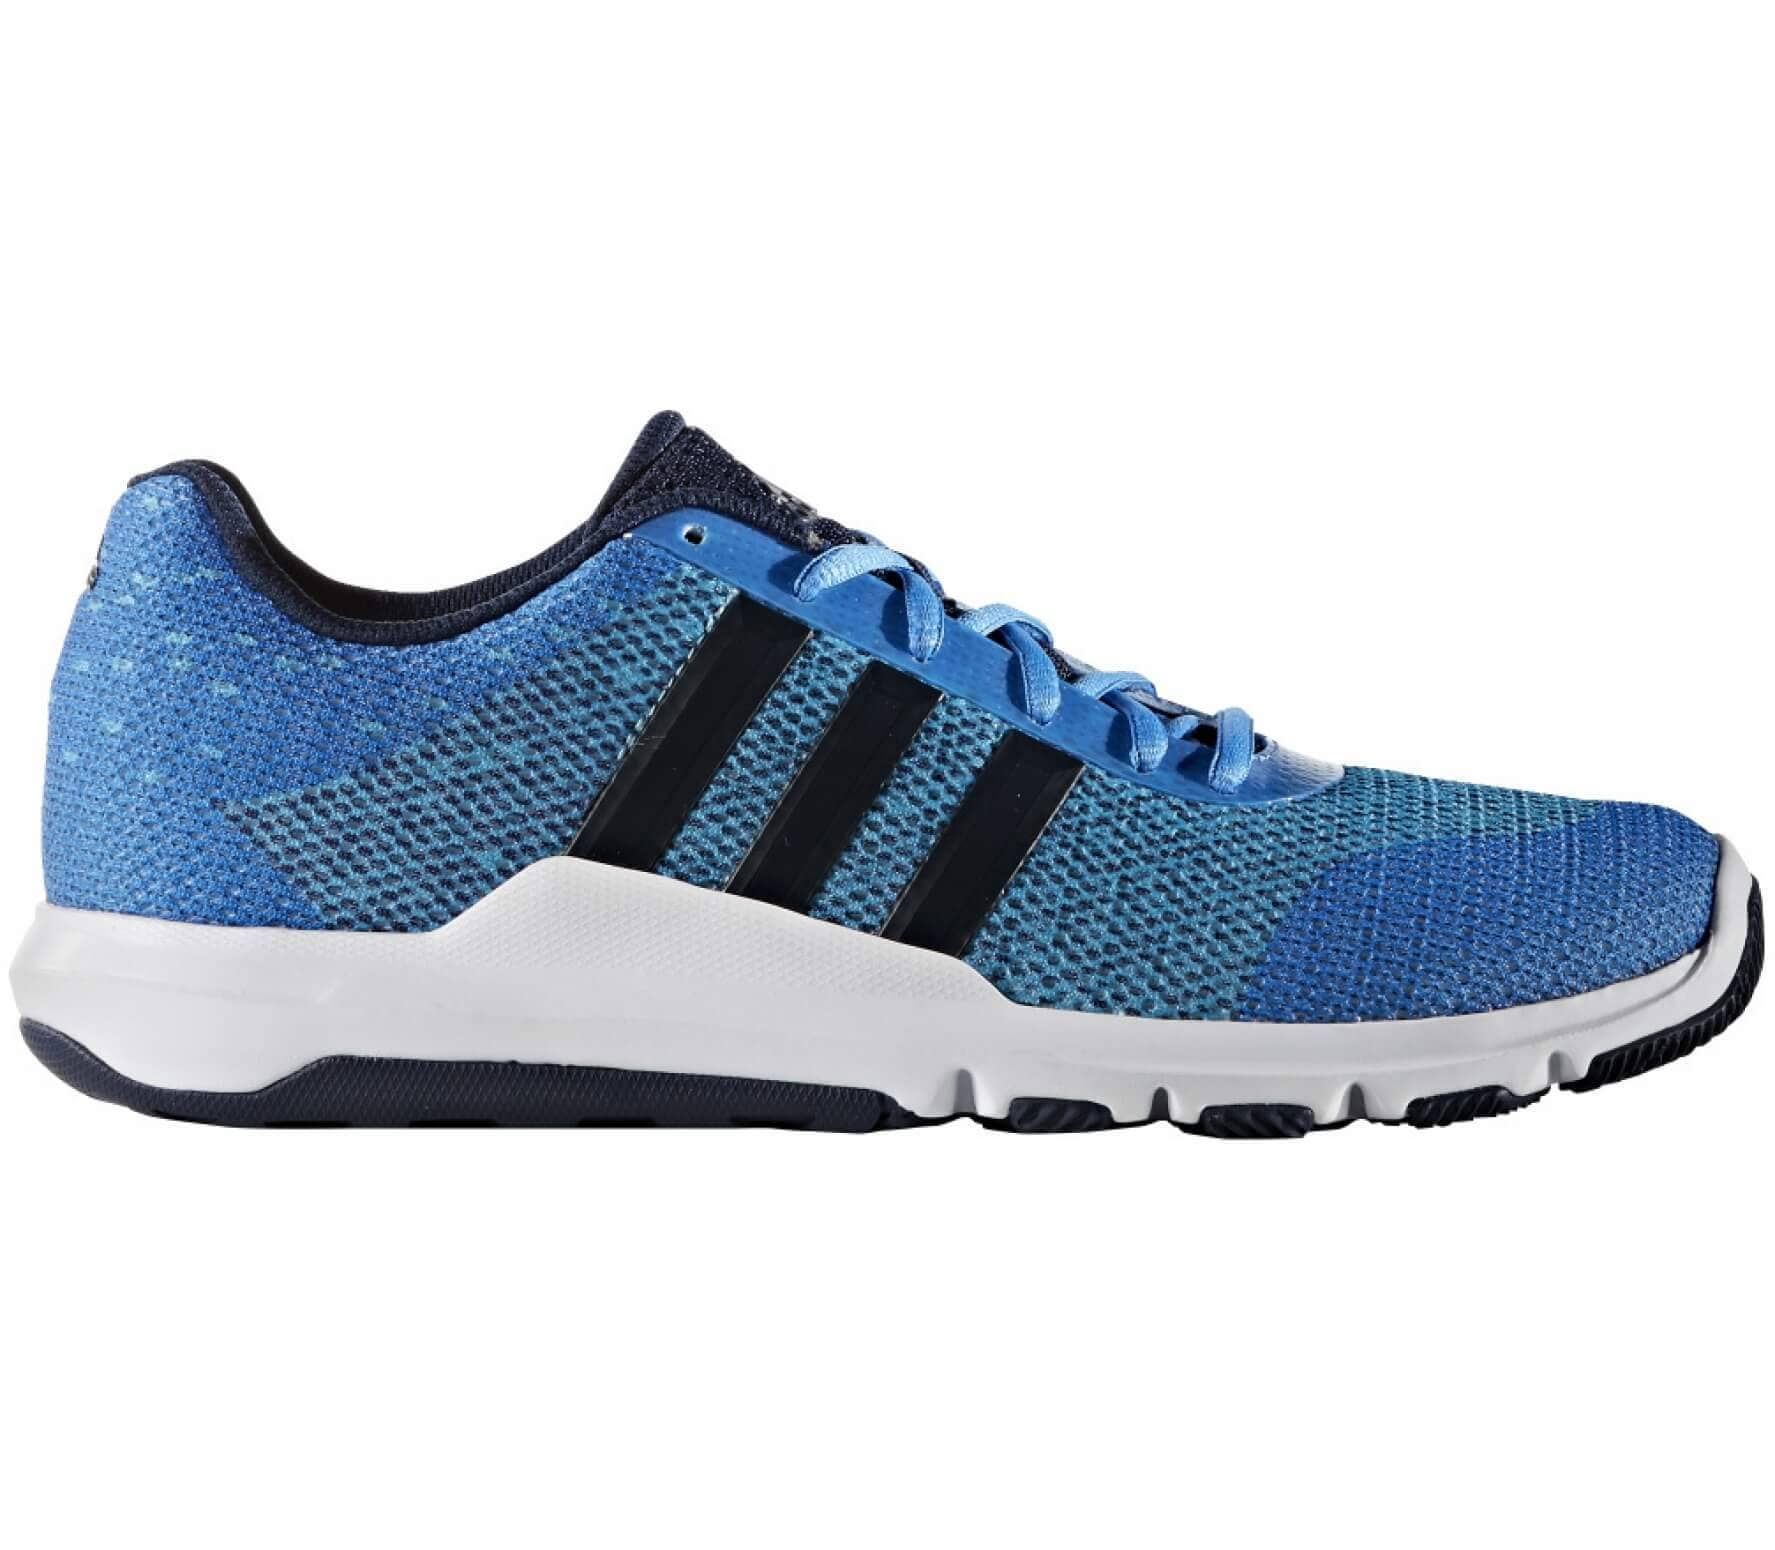 huge selection of 5a6d6 550b1 Adidas - Adipure Primo men s training shoes (blue black)